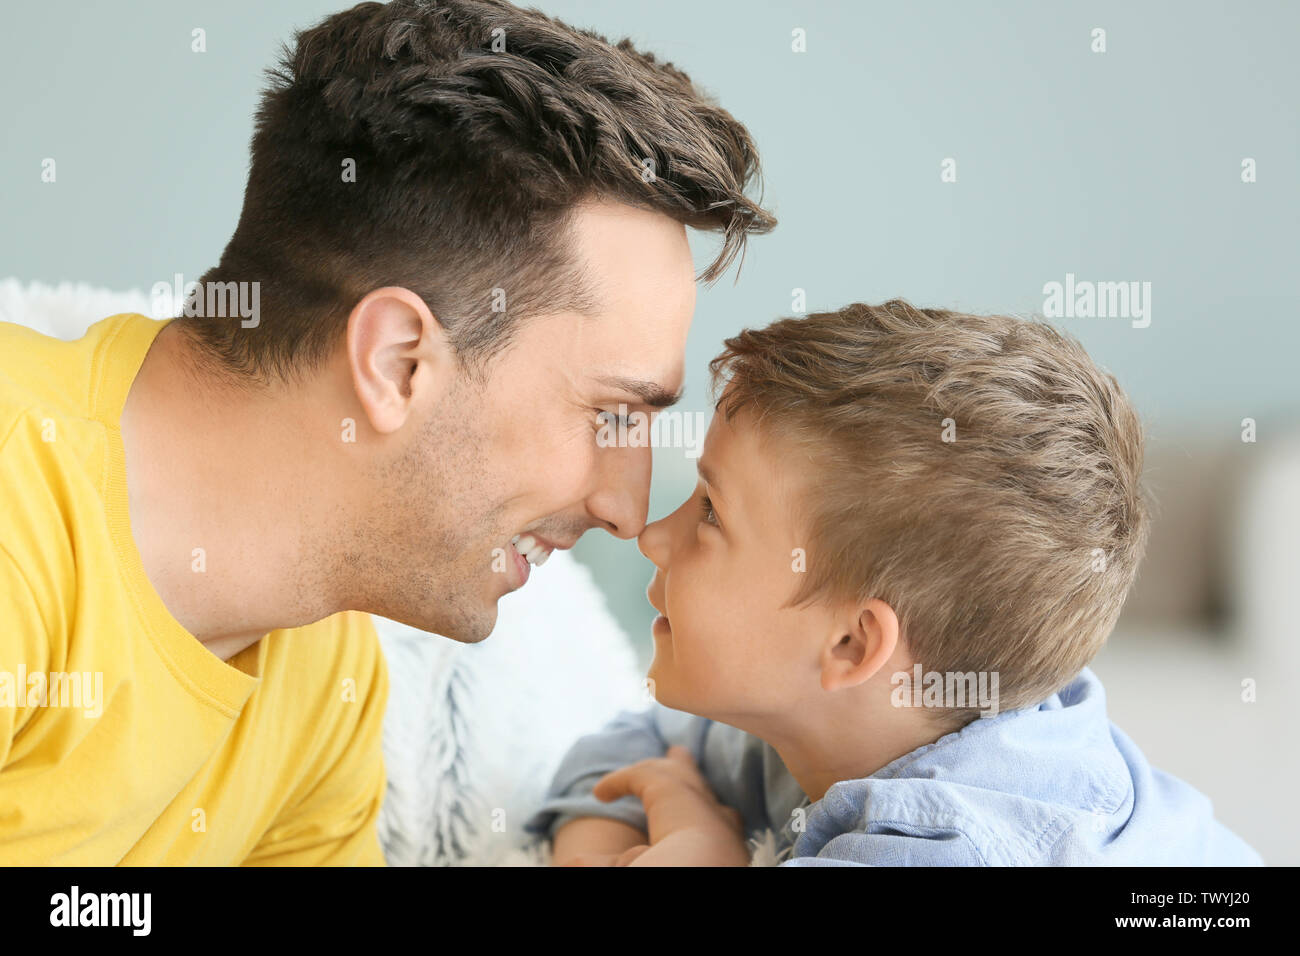 Portrait of happy father and son at home - Stock Image